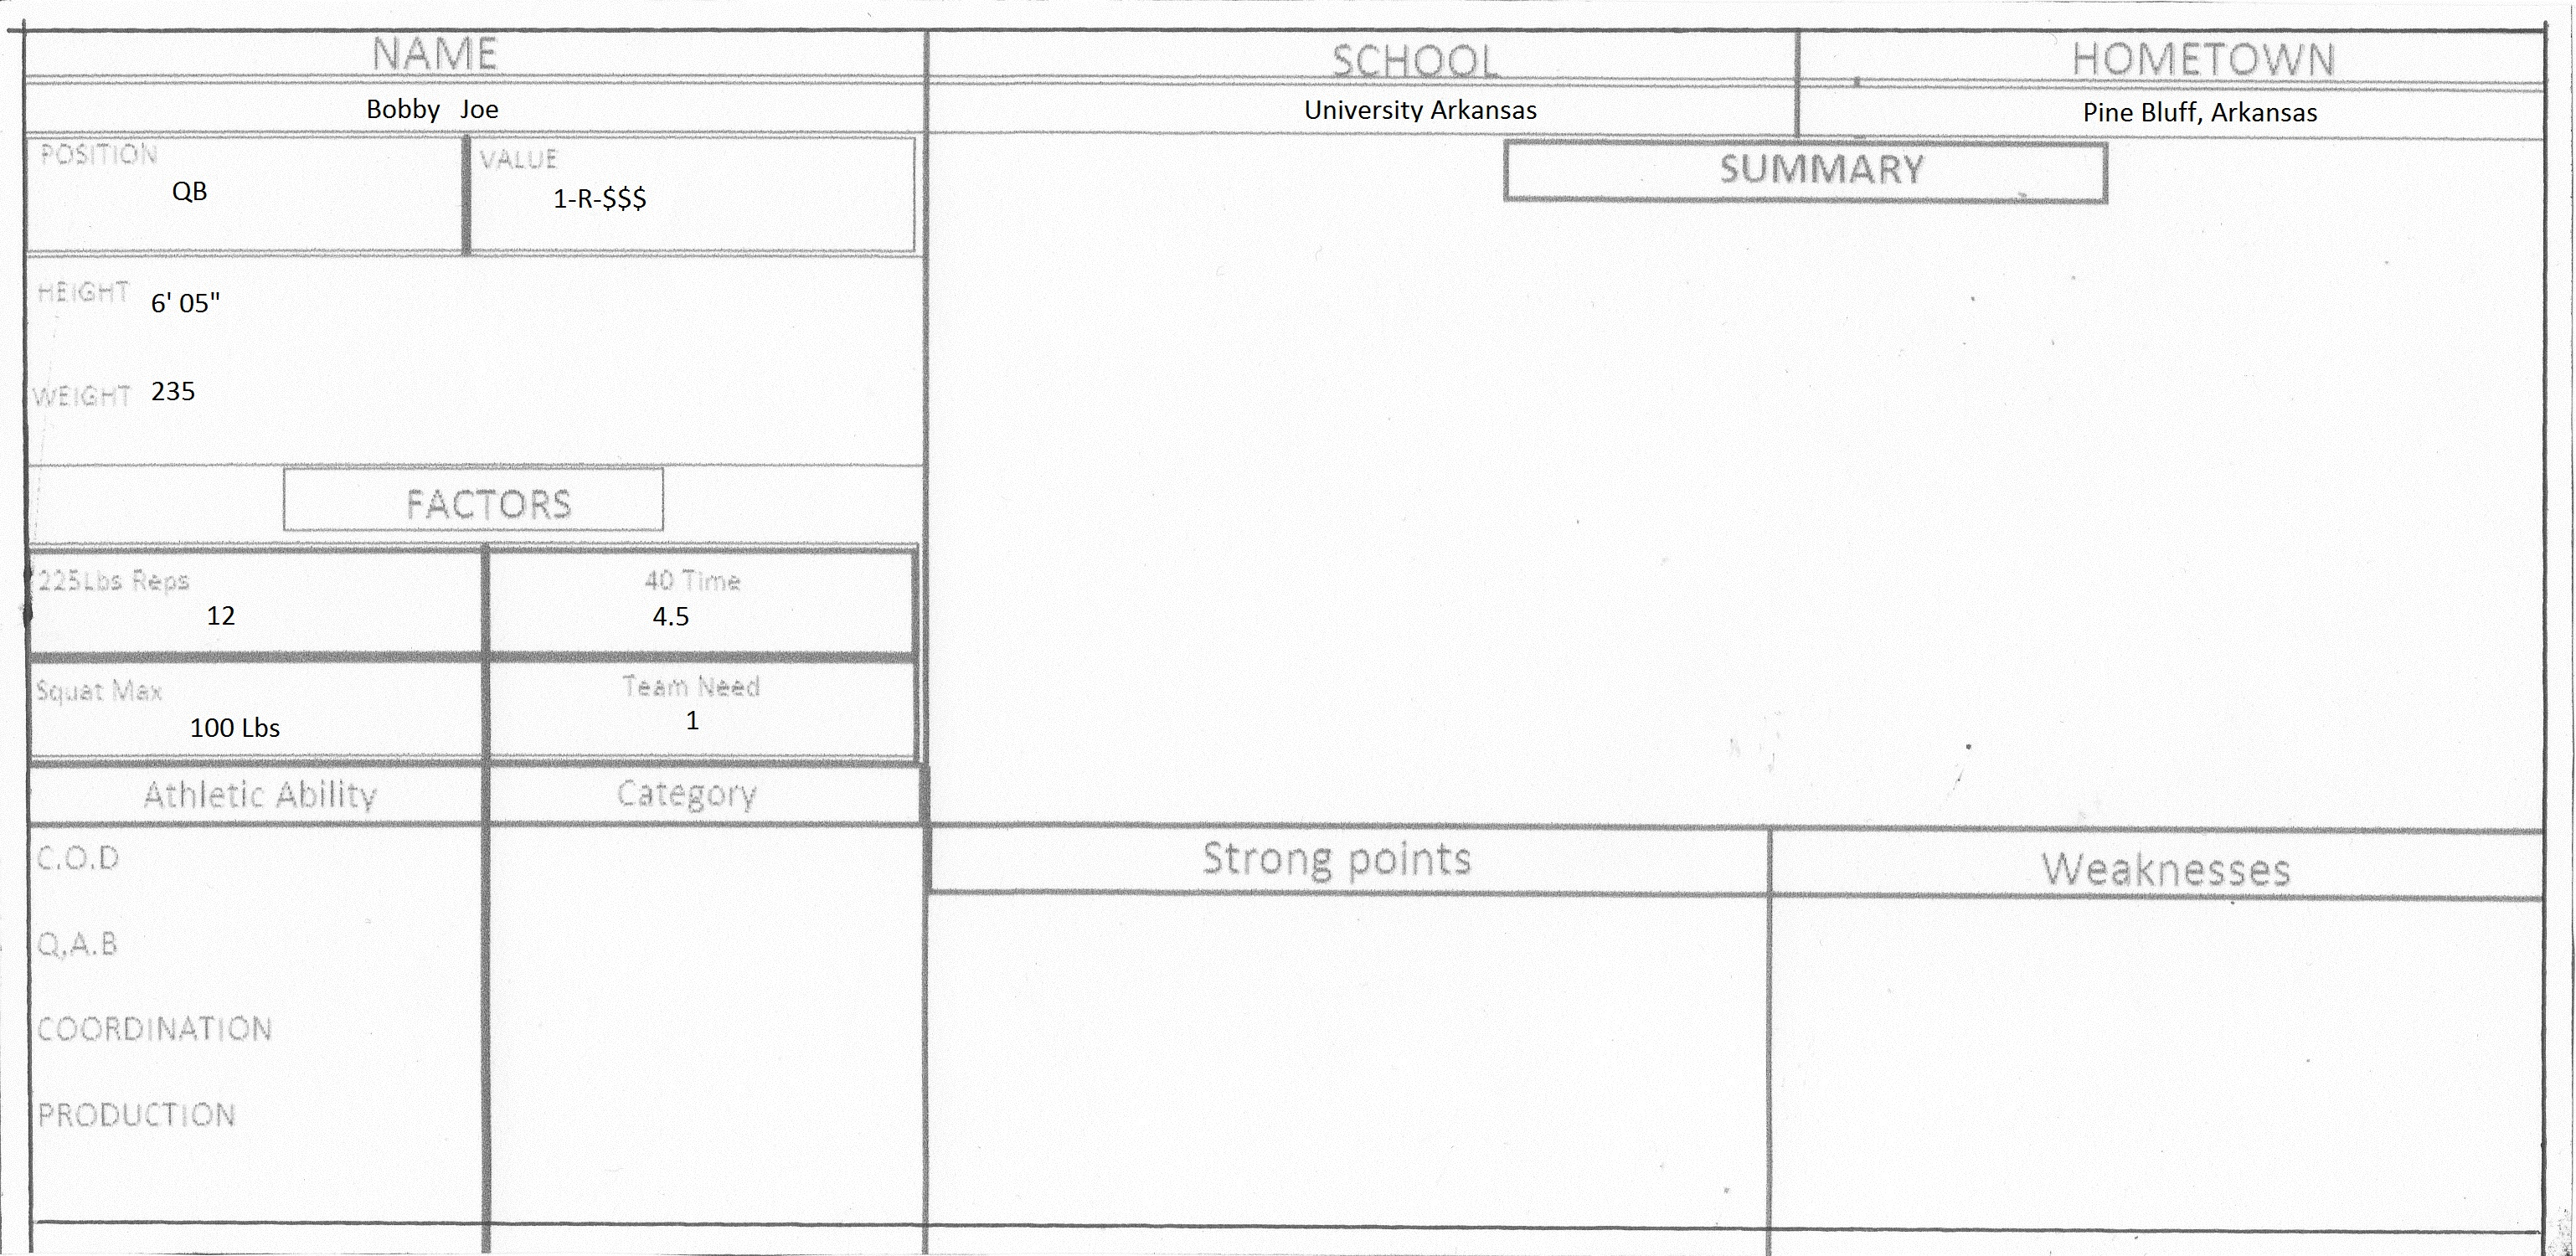 Scouting Reports With Basketball Scouting Report Template